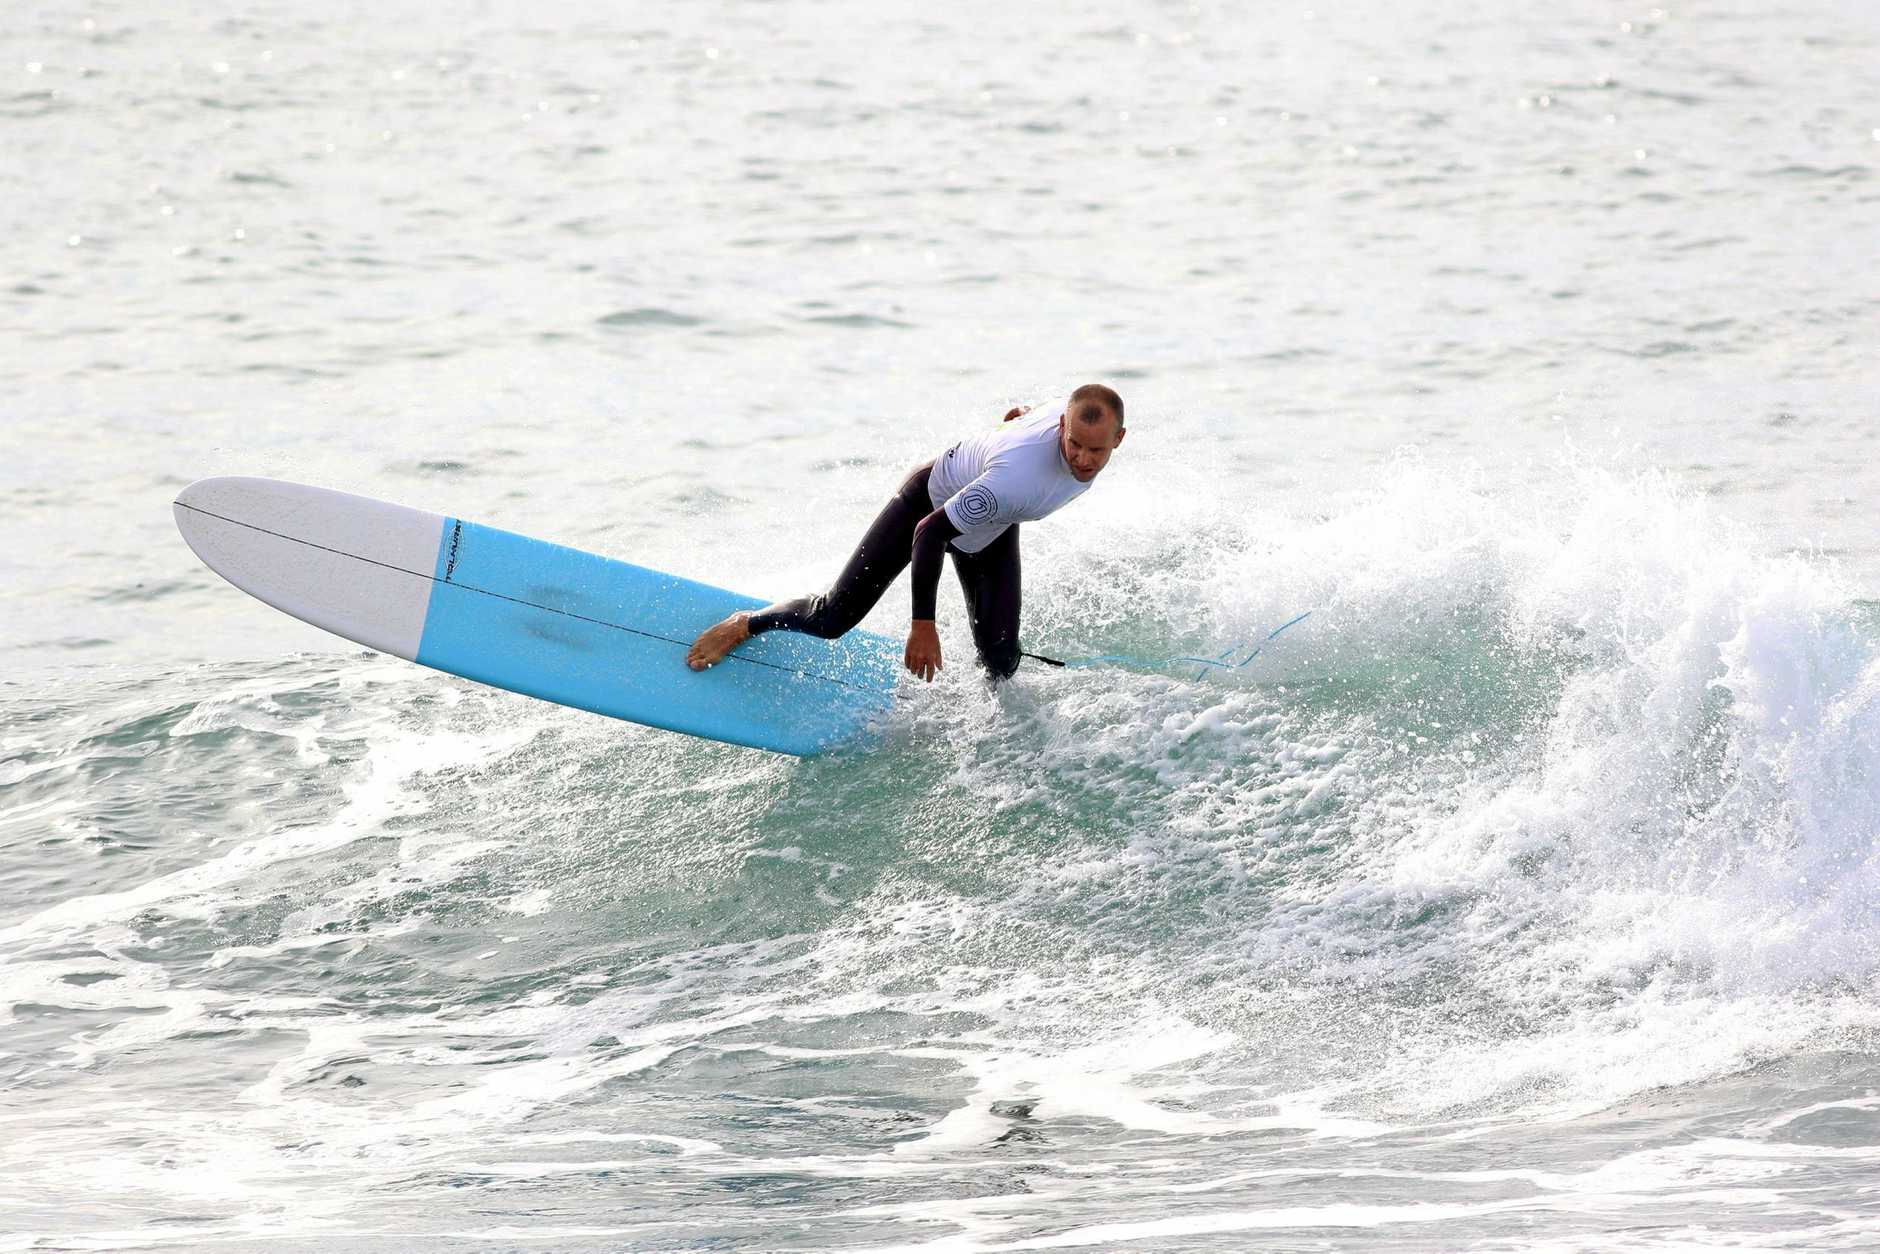 TWO UP: Woolgoolga surfer Charlie O'Sullivan has had a fantastic run in recent years at NSW Longboard Championship meetings.